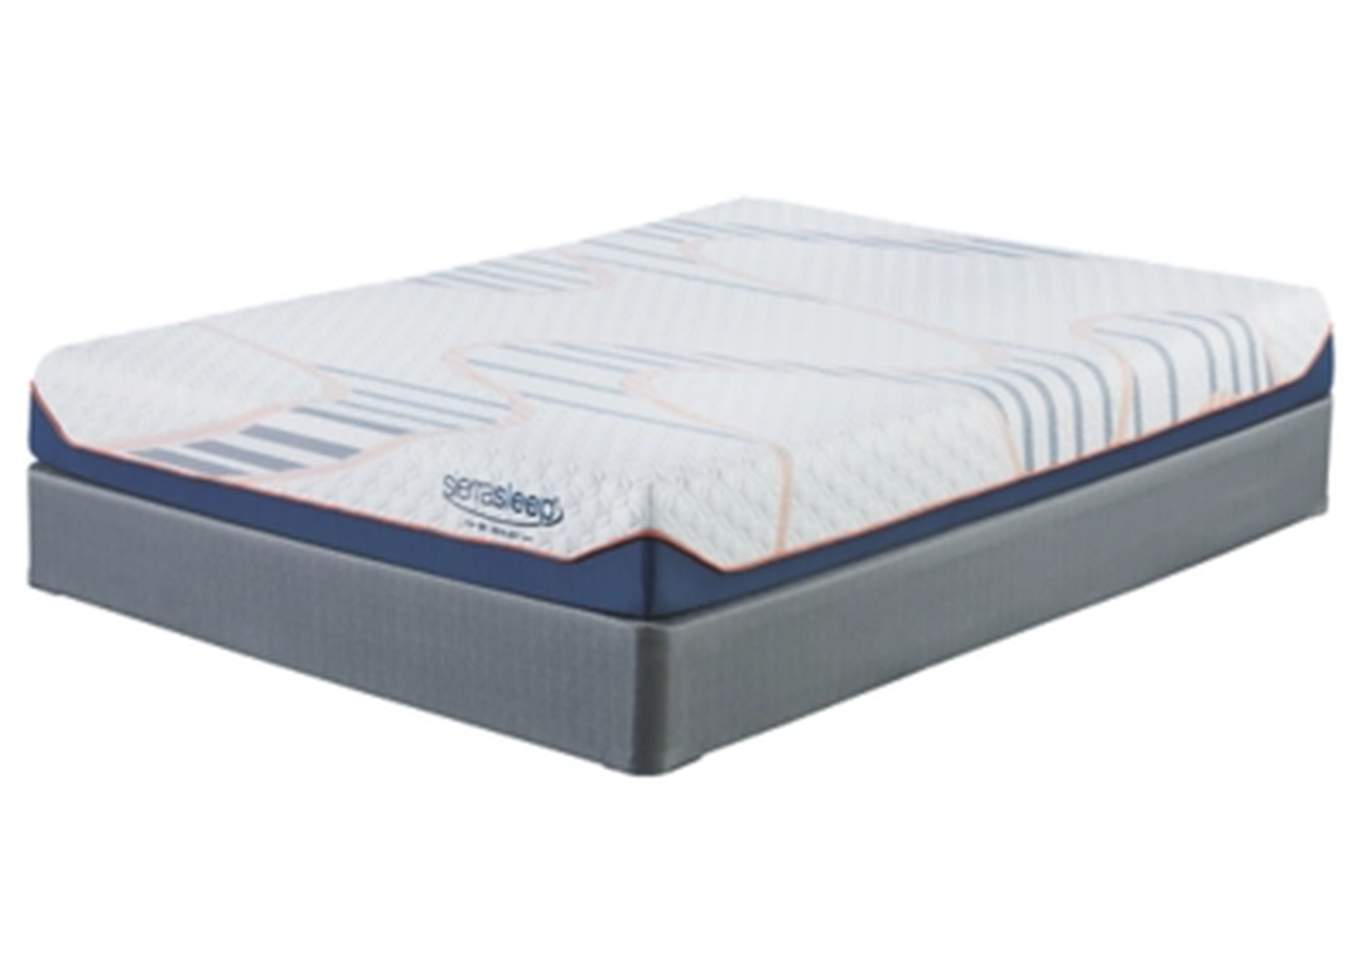 8 Inch MyGel White Twin Mattress w/Foundation,Sierra Sleep by Ashley